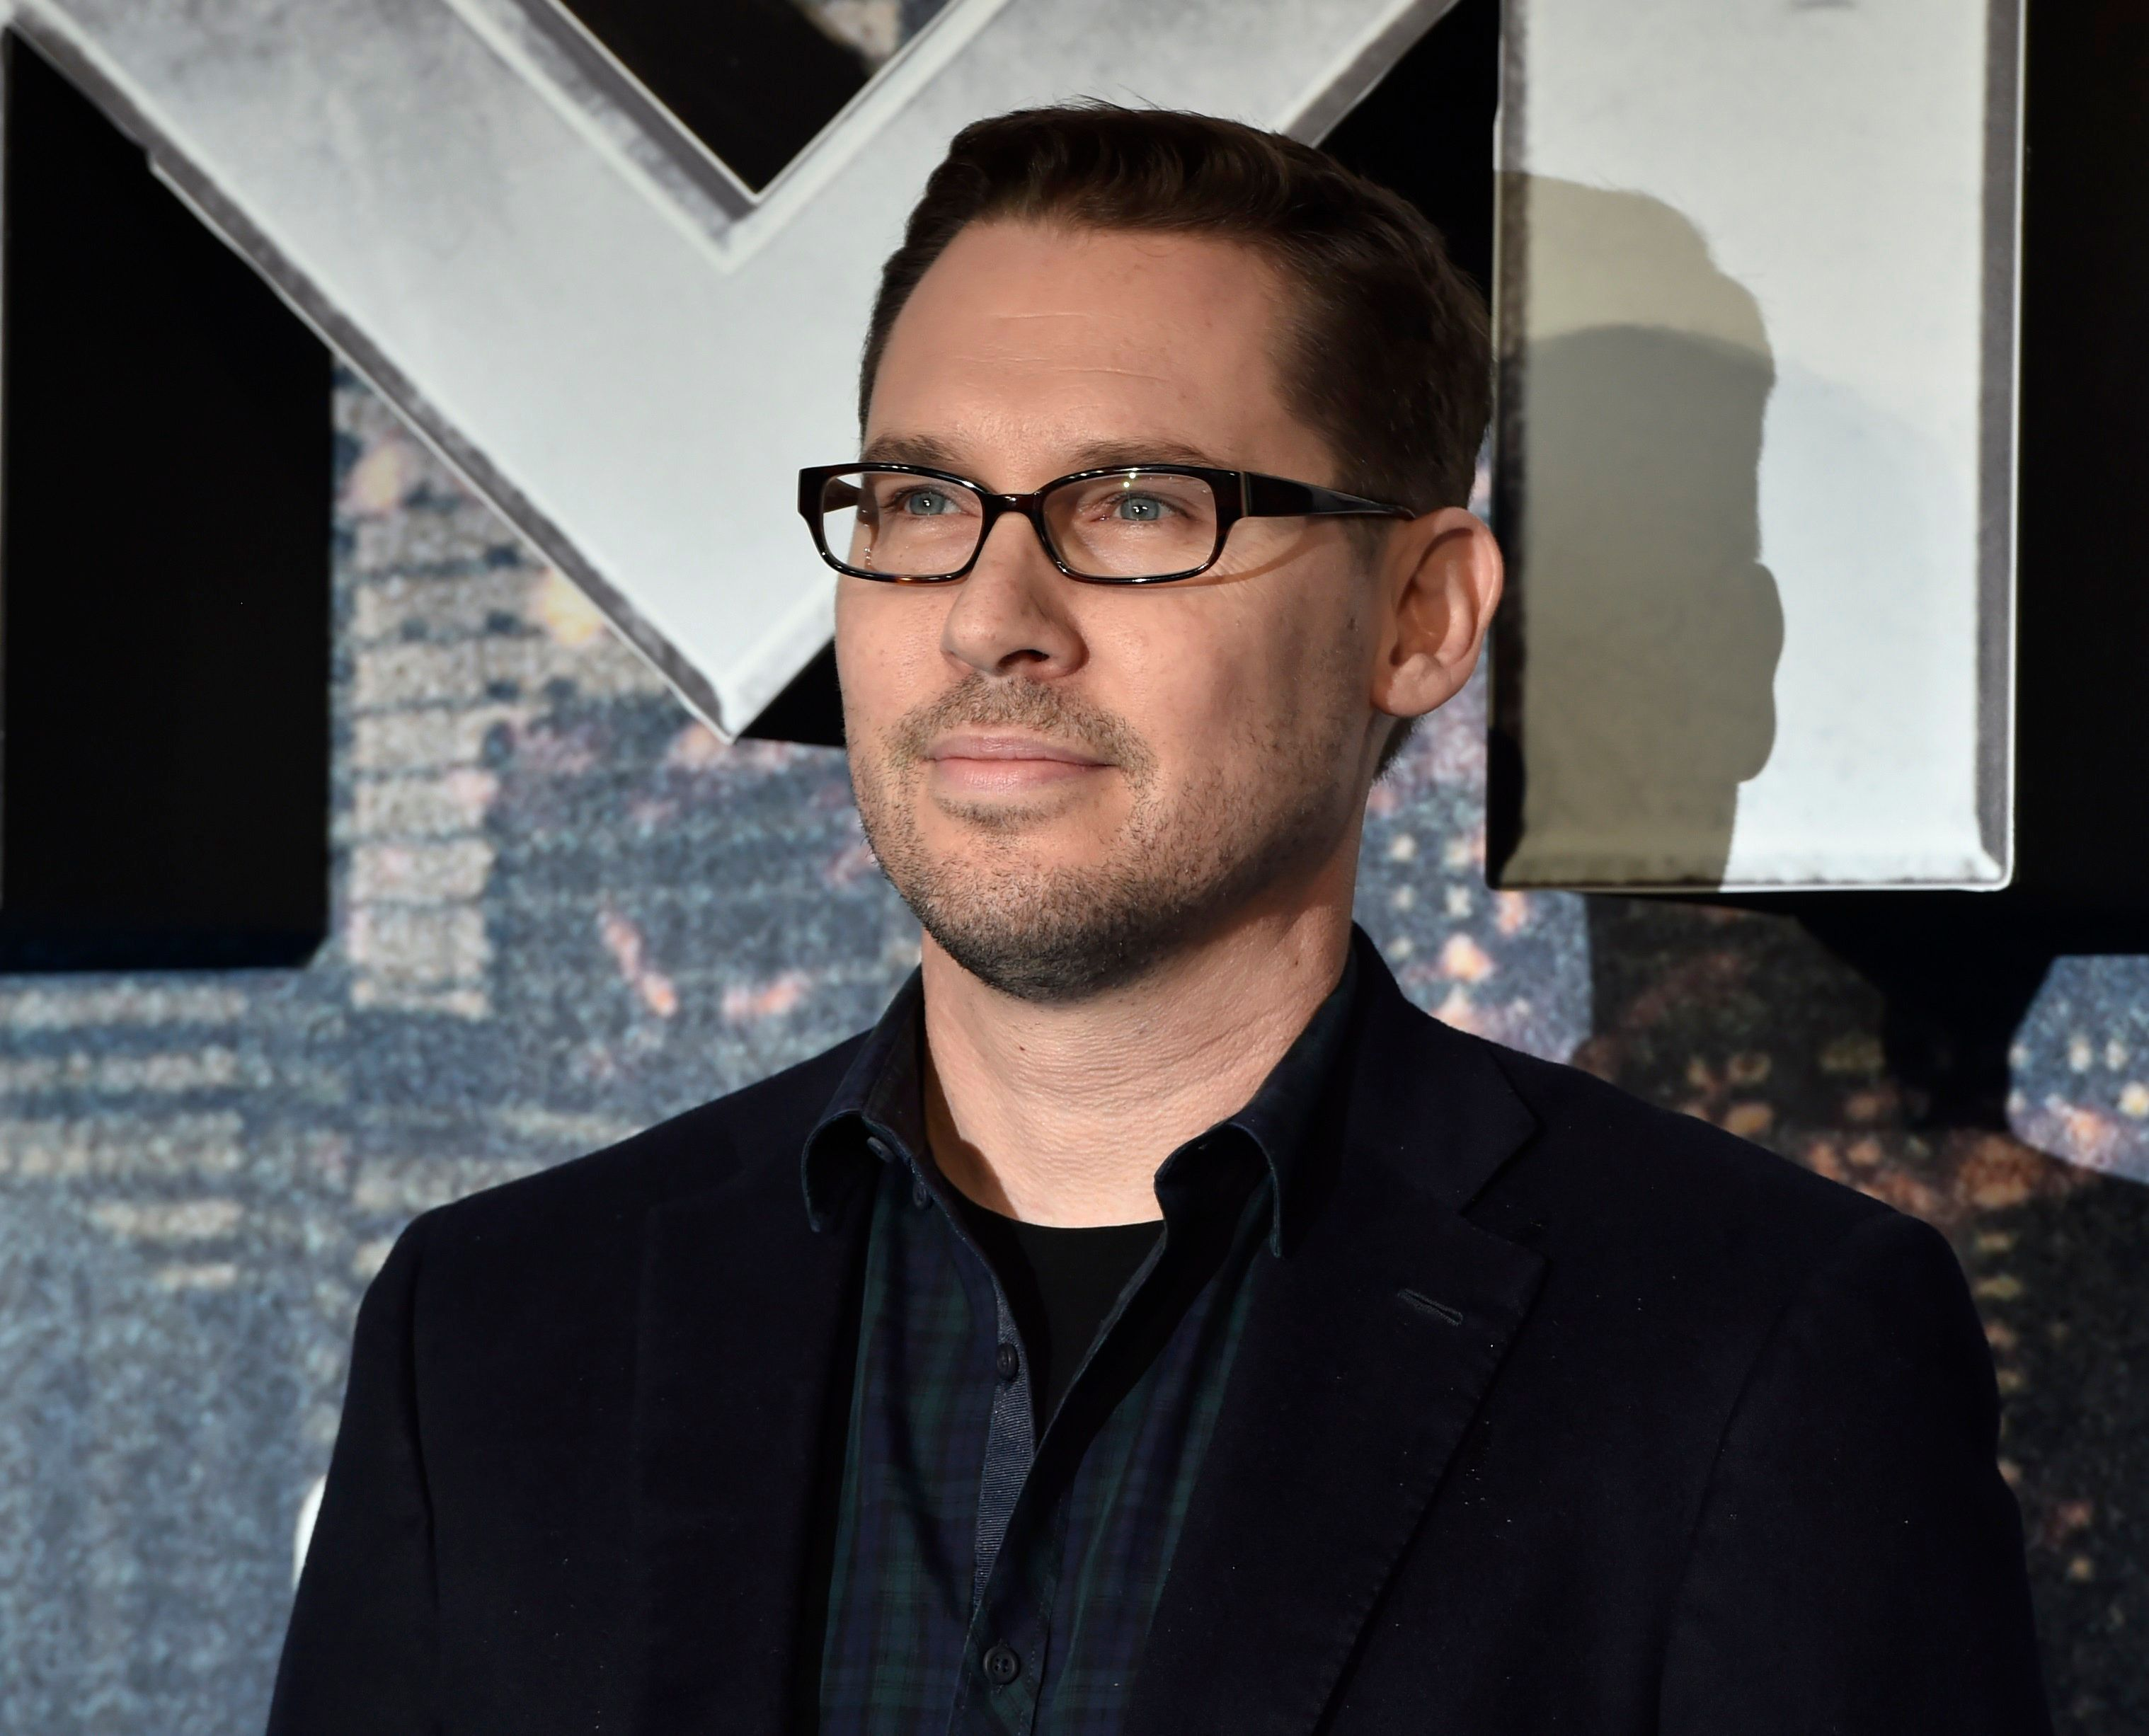 'Bohemian Rhapsody' Director Bryan Singer Faces New Sexual Abuse